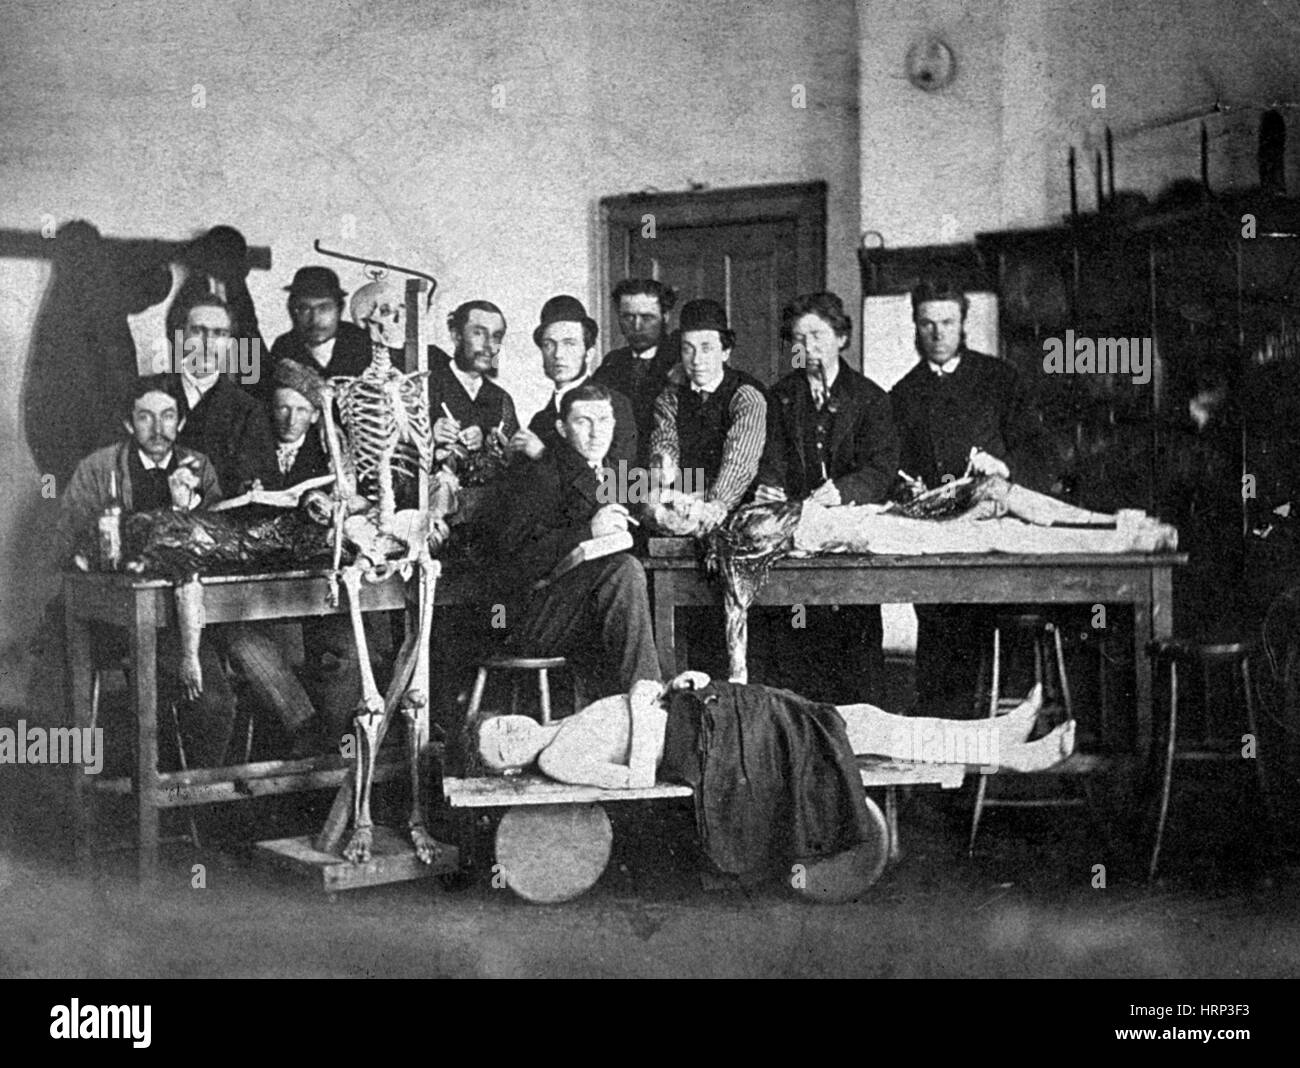 Medical Students and Cadavers, 1910s - Stock Image